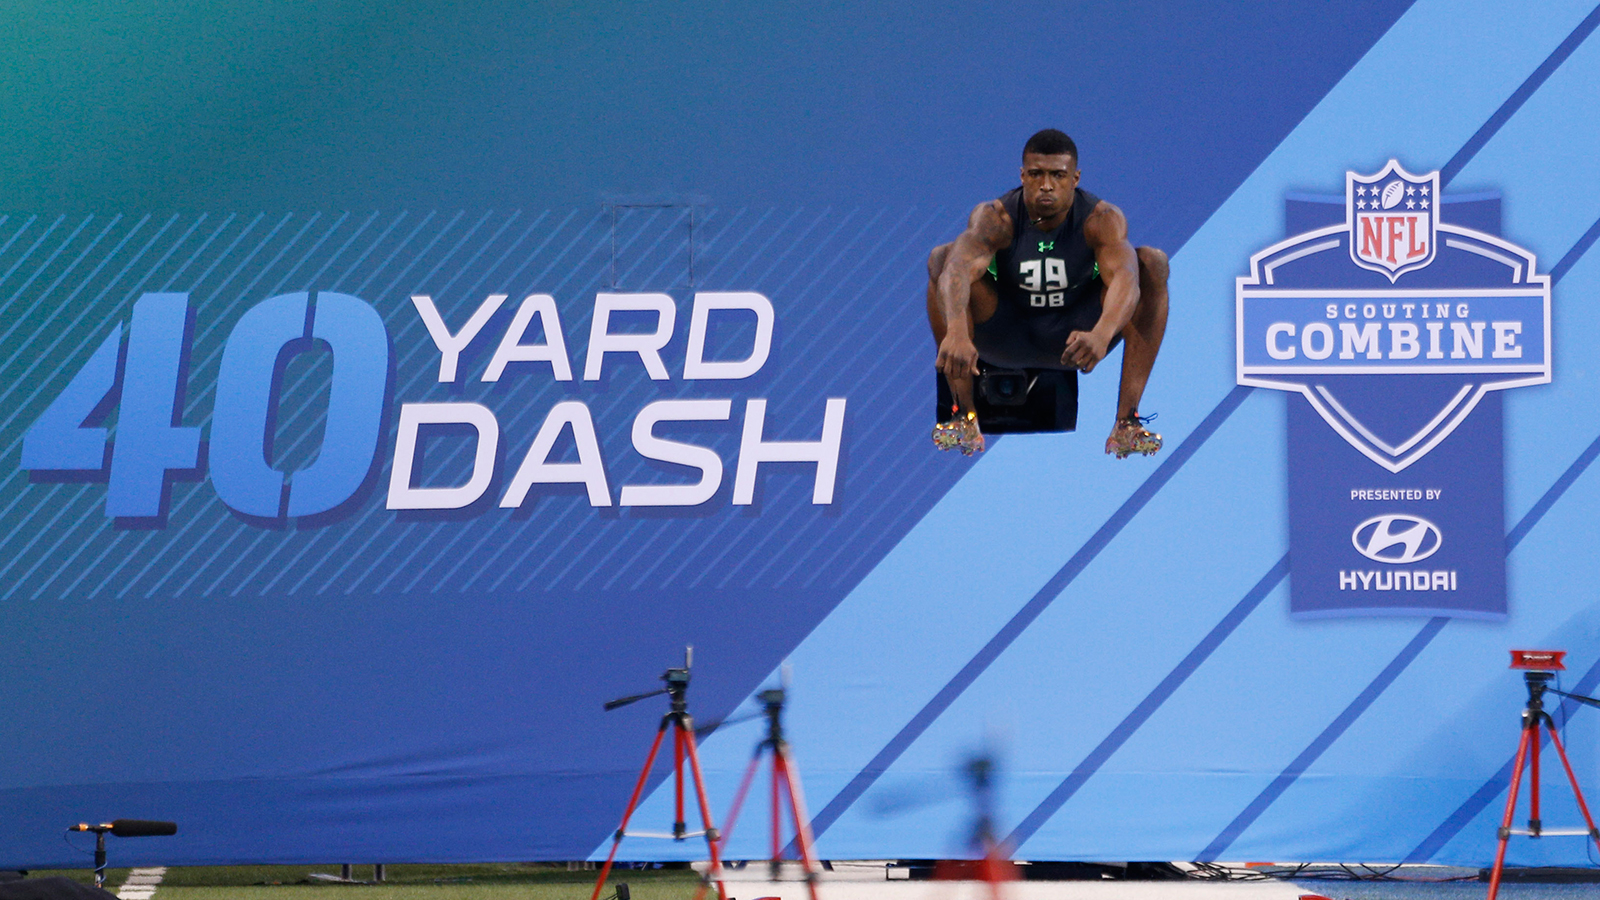 Feb 29, 2016; Indianapolis, IN, USA; Florida Gators  defensive back Keanu Neal jumps up to stretch before running the 40 yard dash during the 2016 NFL Scouting Combine at Lucas Oil Stadium. Mandatory Credit: Brian Spurlock-USA TODAY Sports